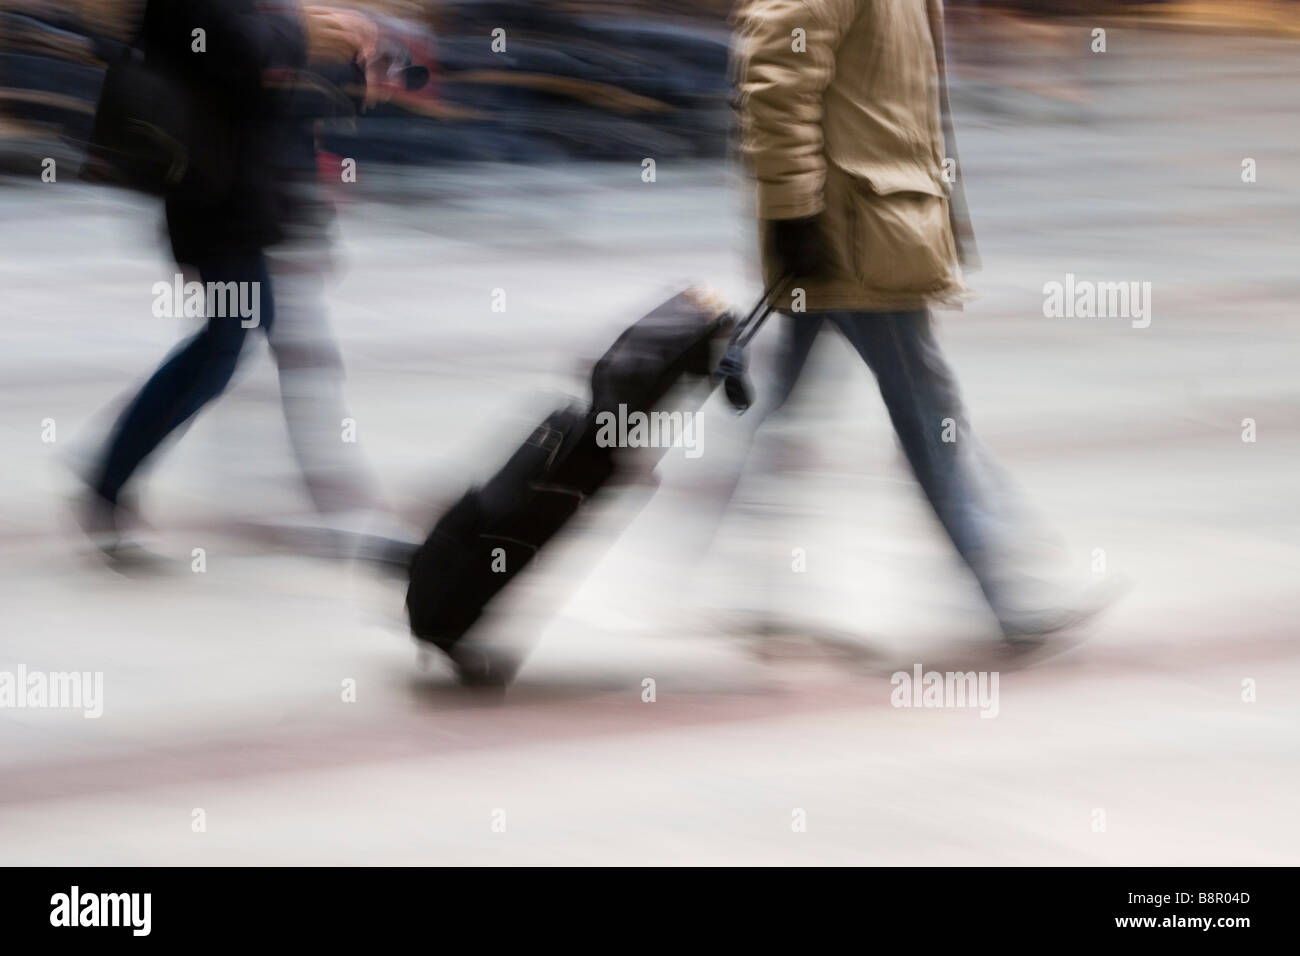 Traveller walking with a travellerbag. - Stock Image